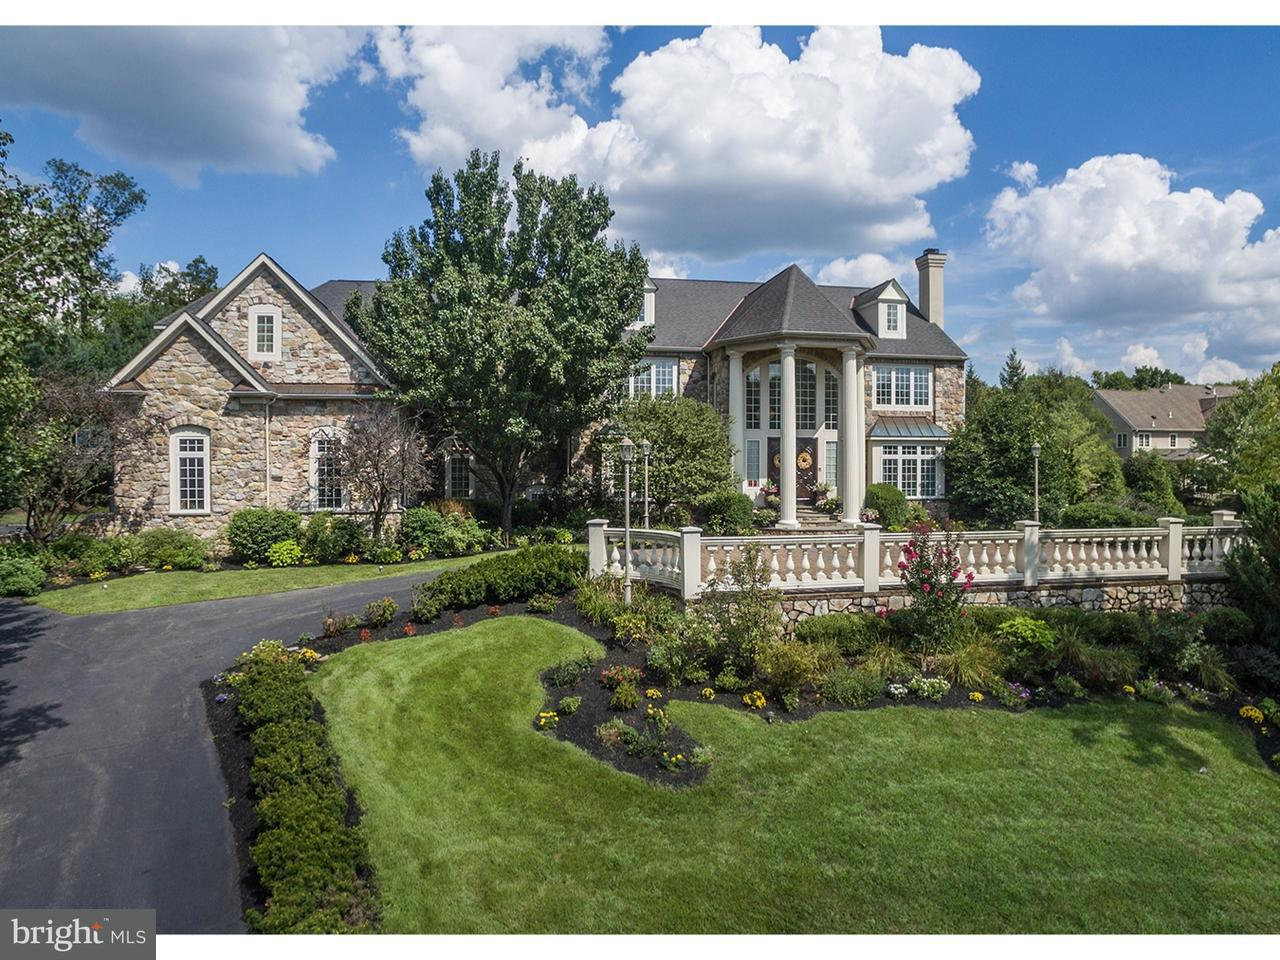 Single Family Home for Sale at 9 DEVONSHIRES Court Blue Bell, Pennsylvania 19422 United States